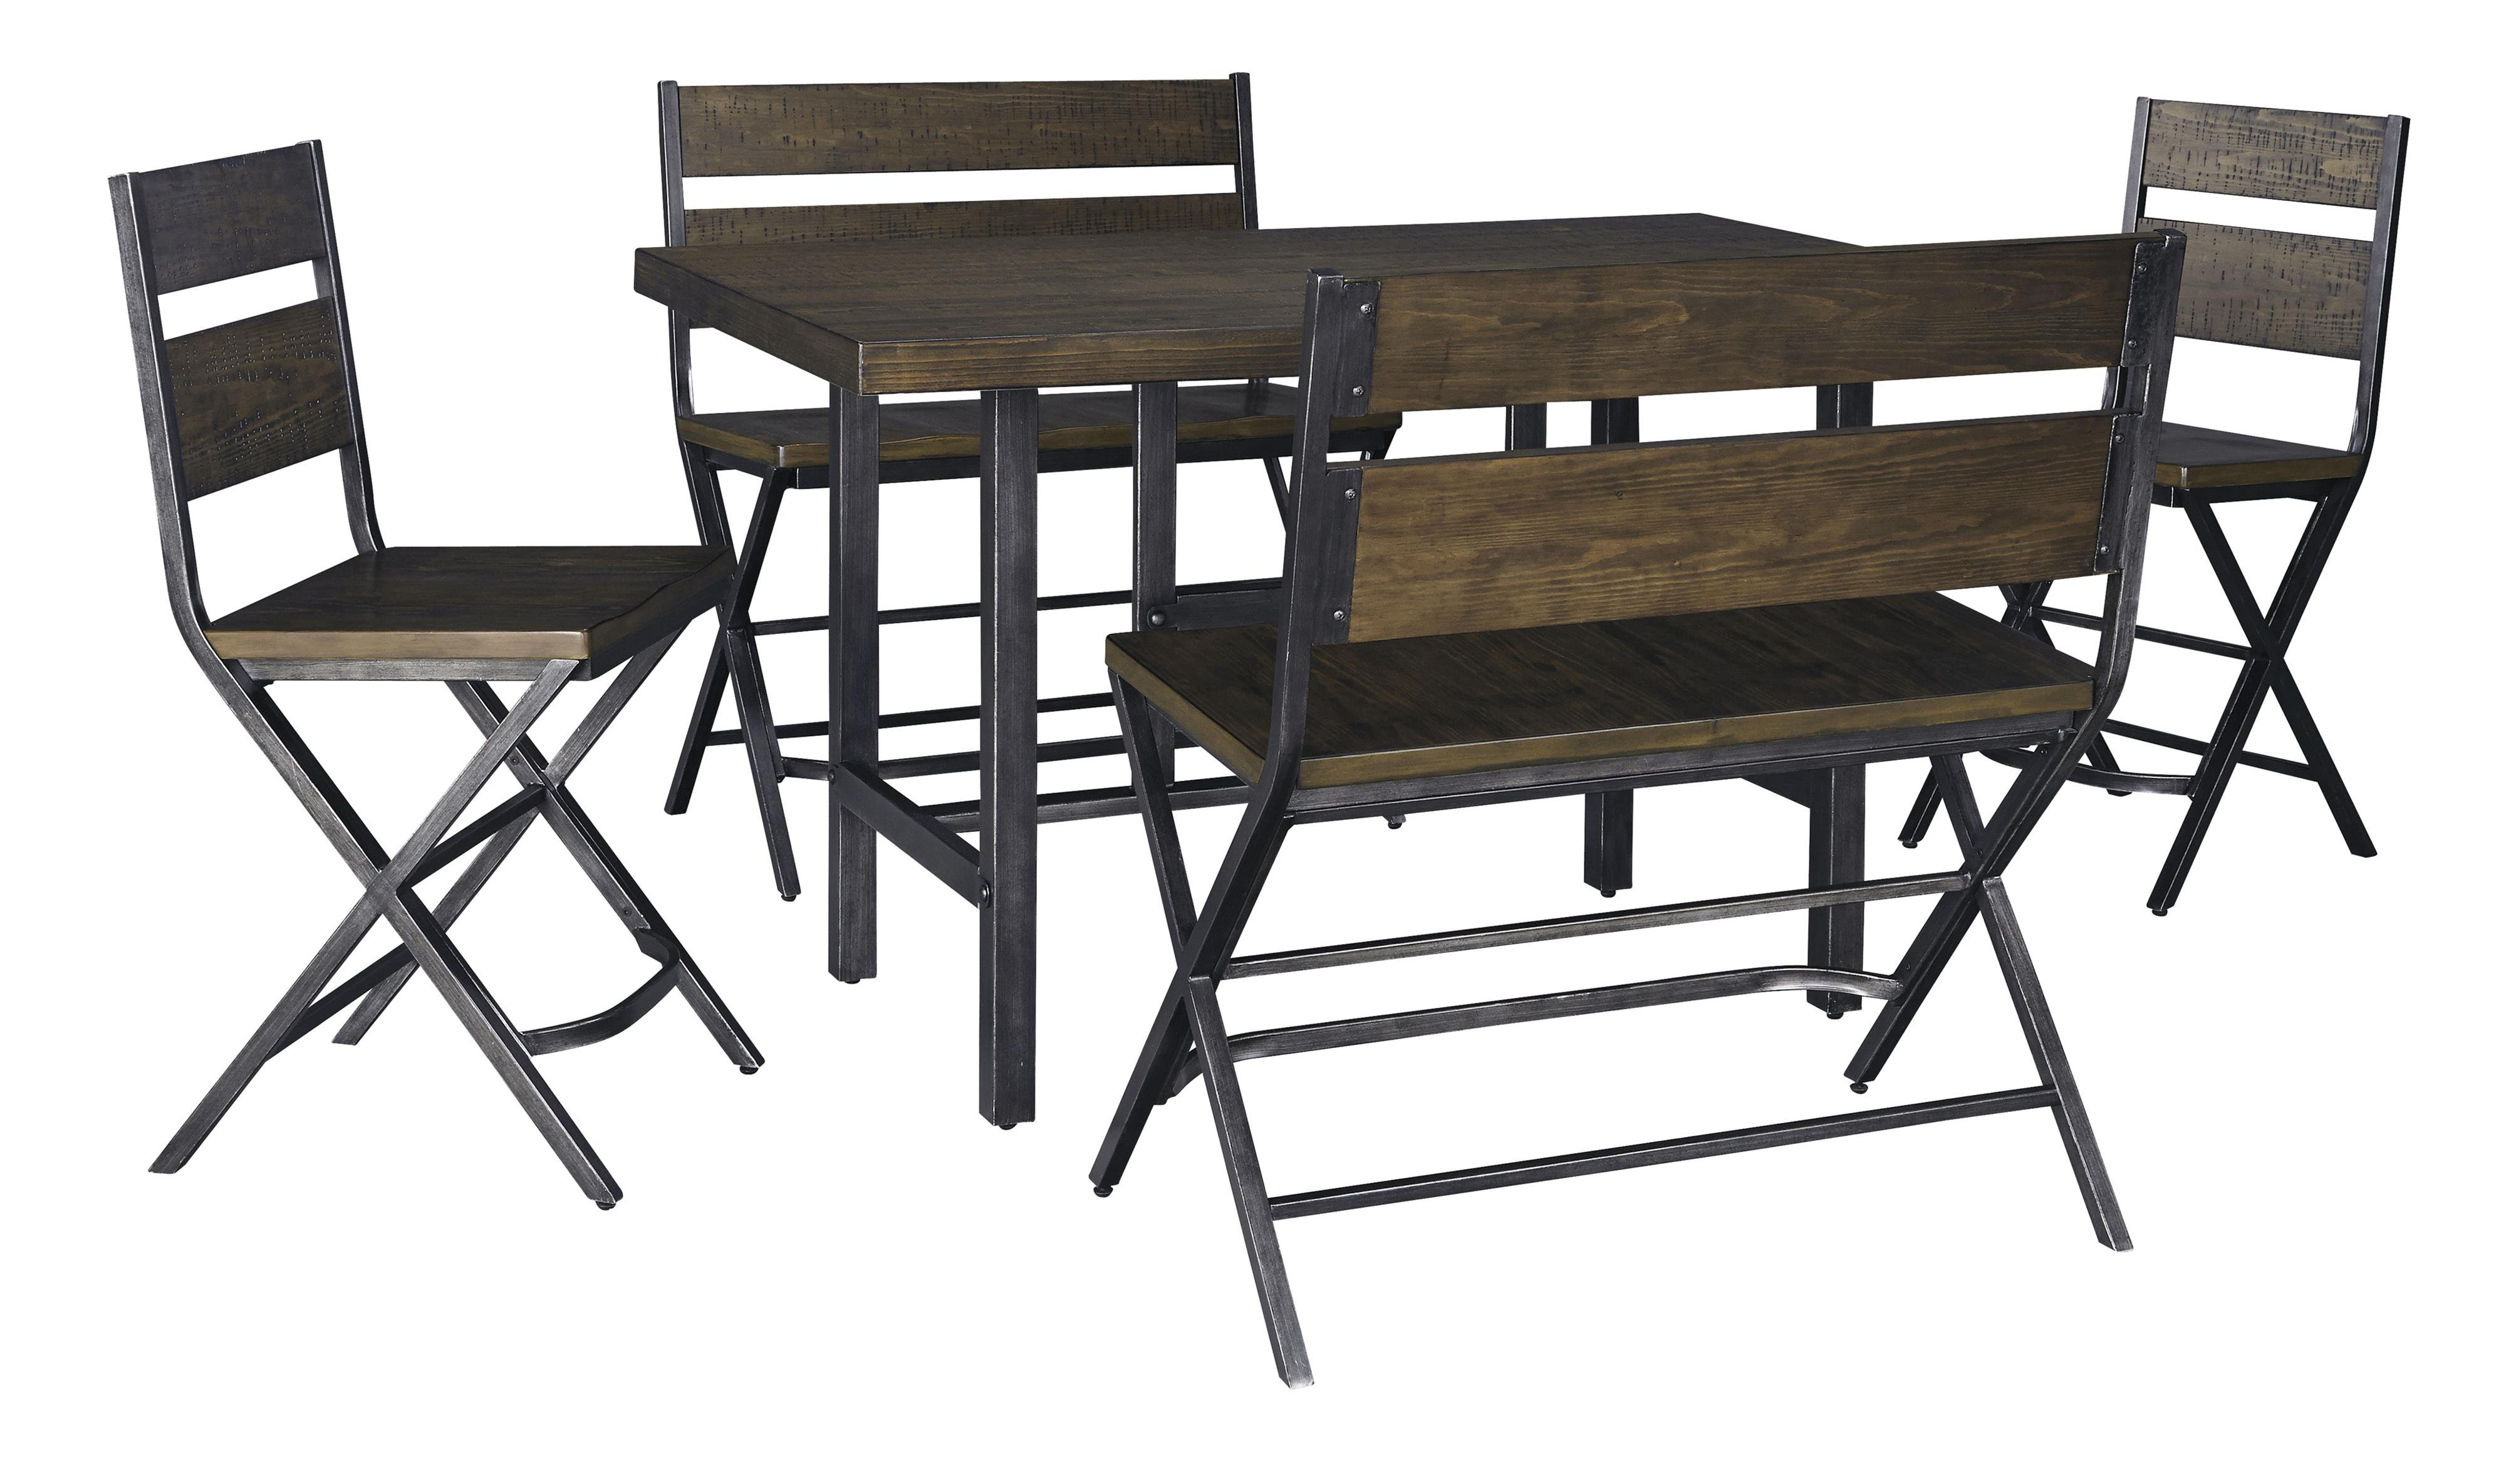 Signature Design by Ashley Kavara 5-Piece Counter Table & Double Bar Stool Set - Item Number: D469-13+2x124+2x323